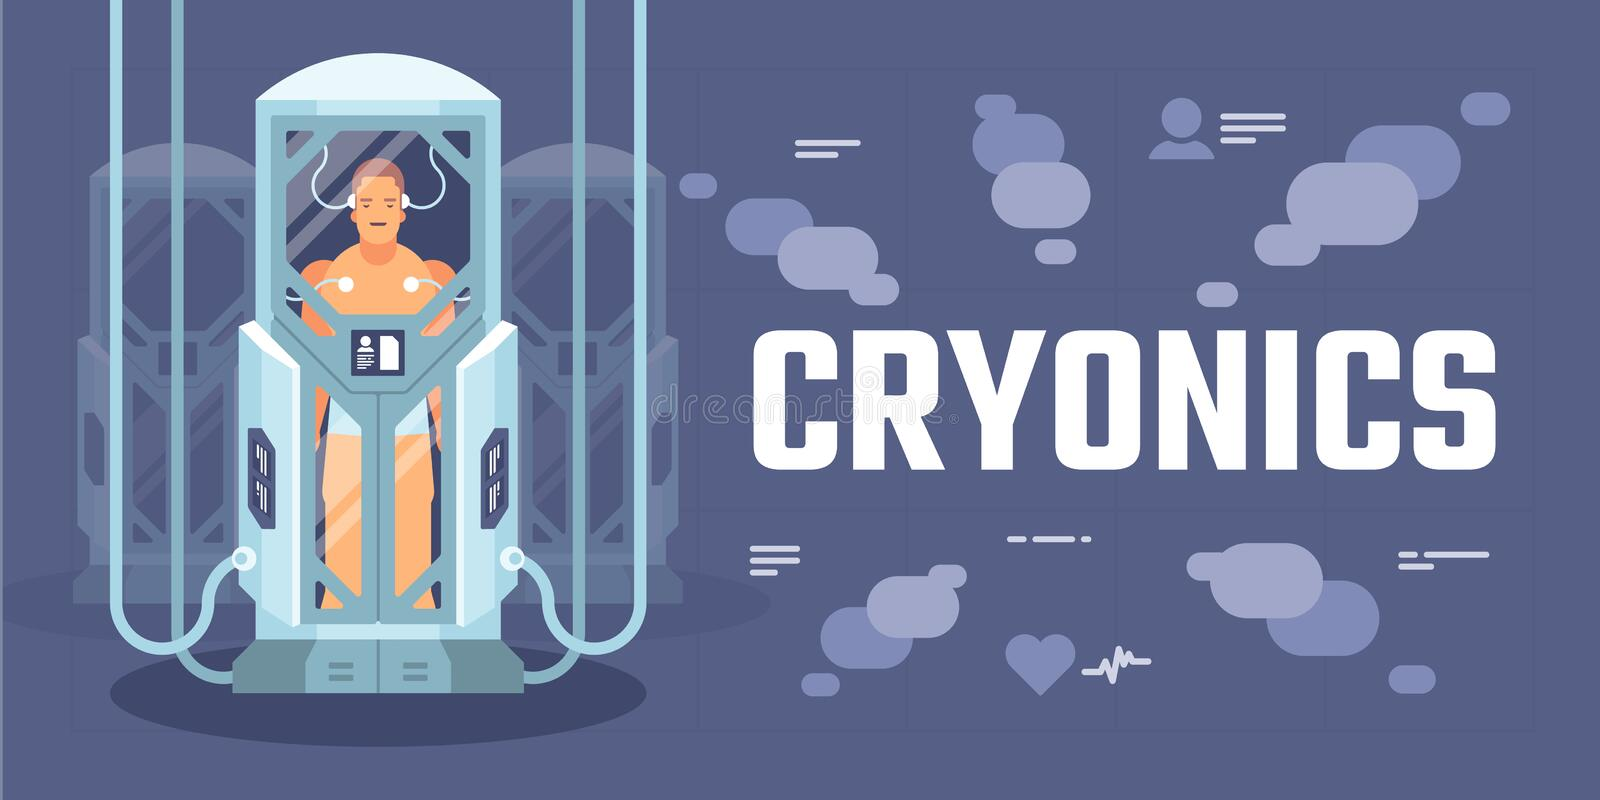 Cryonics. Futuristic cryogenic capsules or containers with humans on spaceship or space shuttle science vector illustration